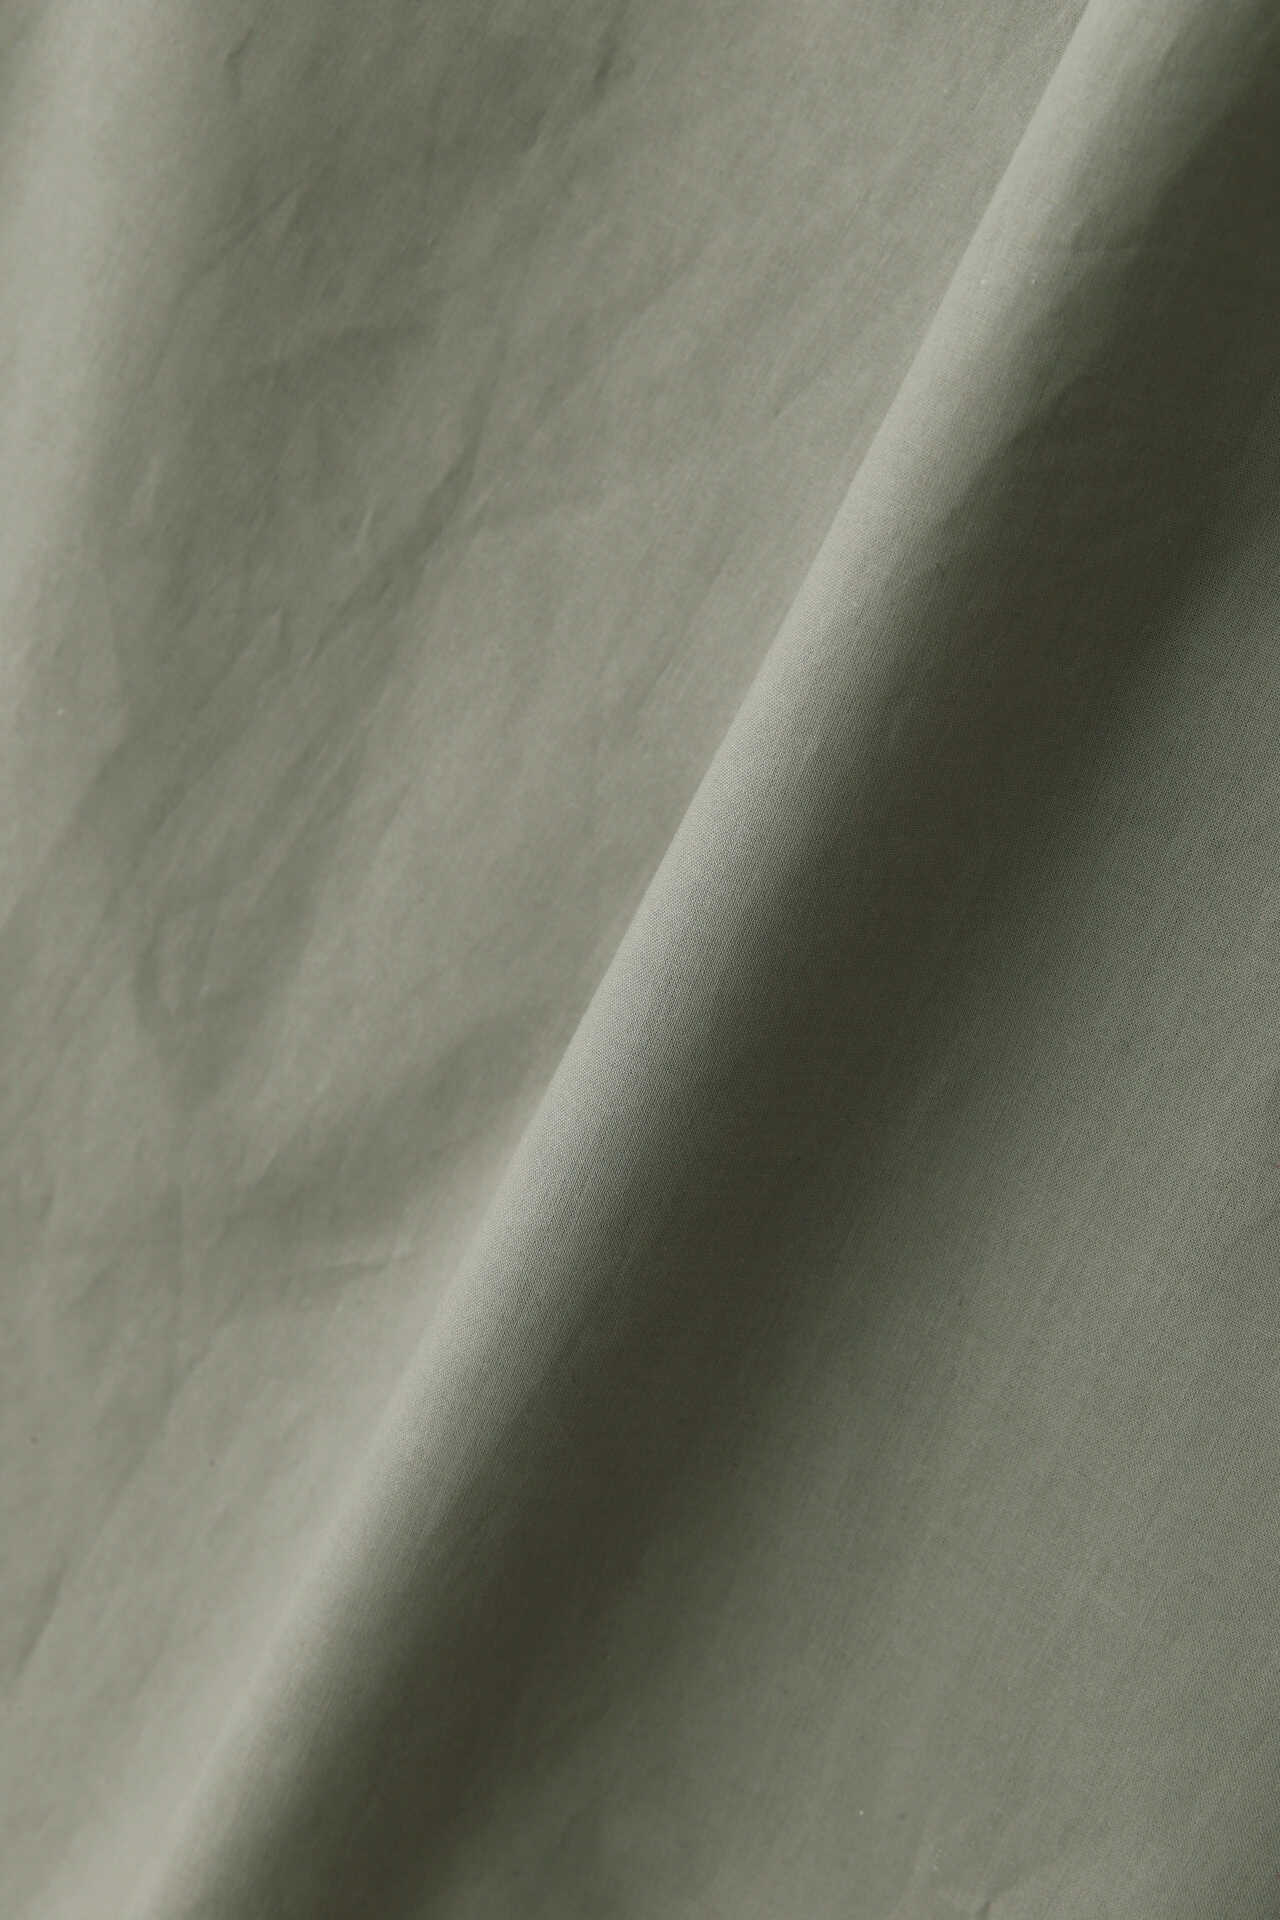 PROOFED FINE COTTON POPLIN11